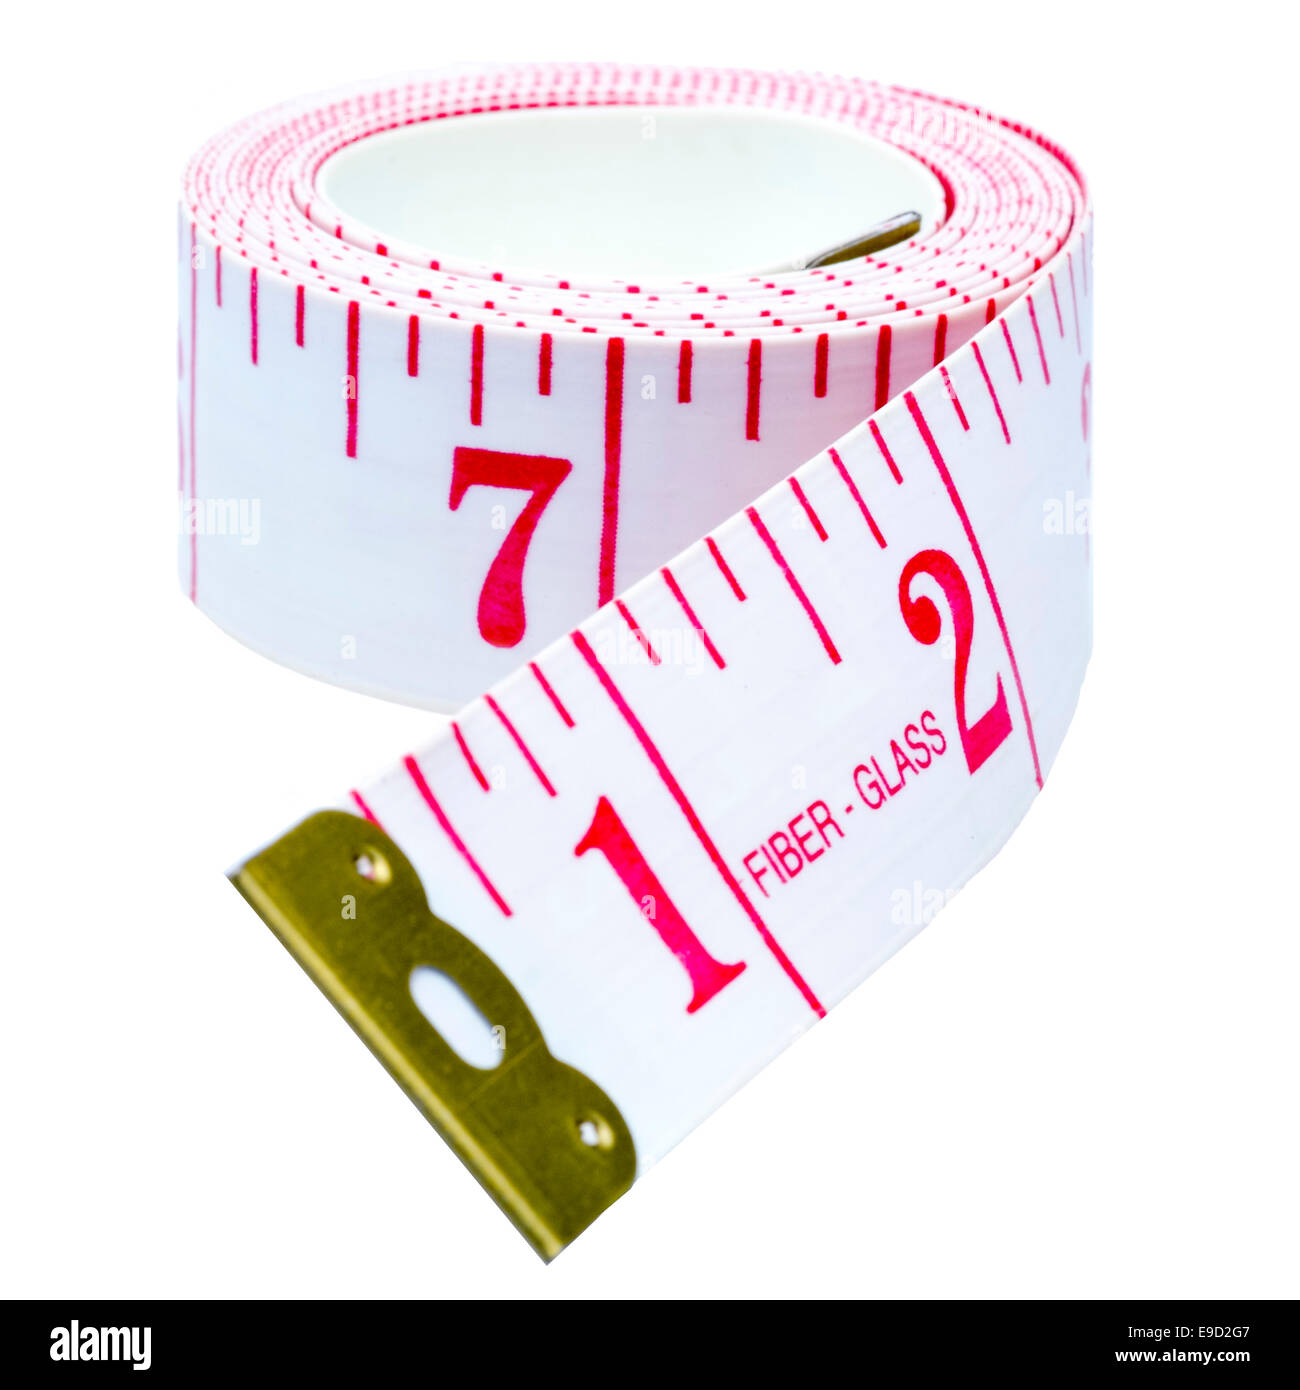 Imperial tailors tape measure, cut out or isolated against a white background. - Stock Image